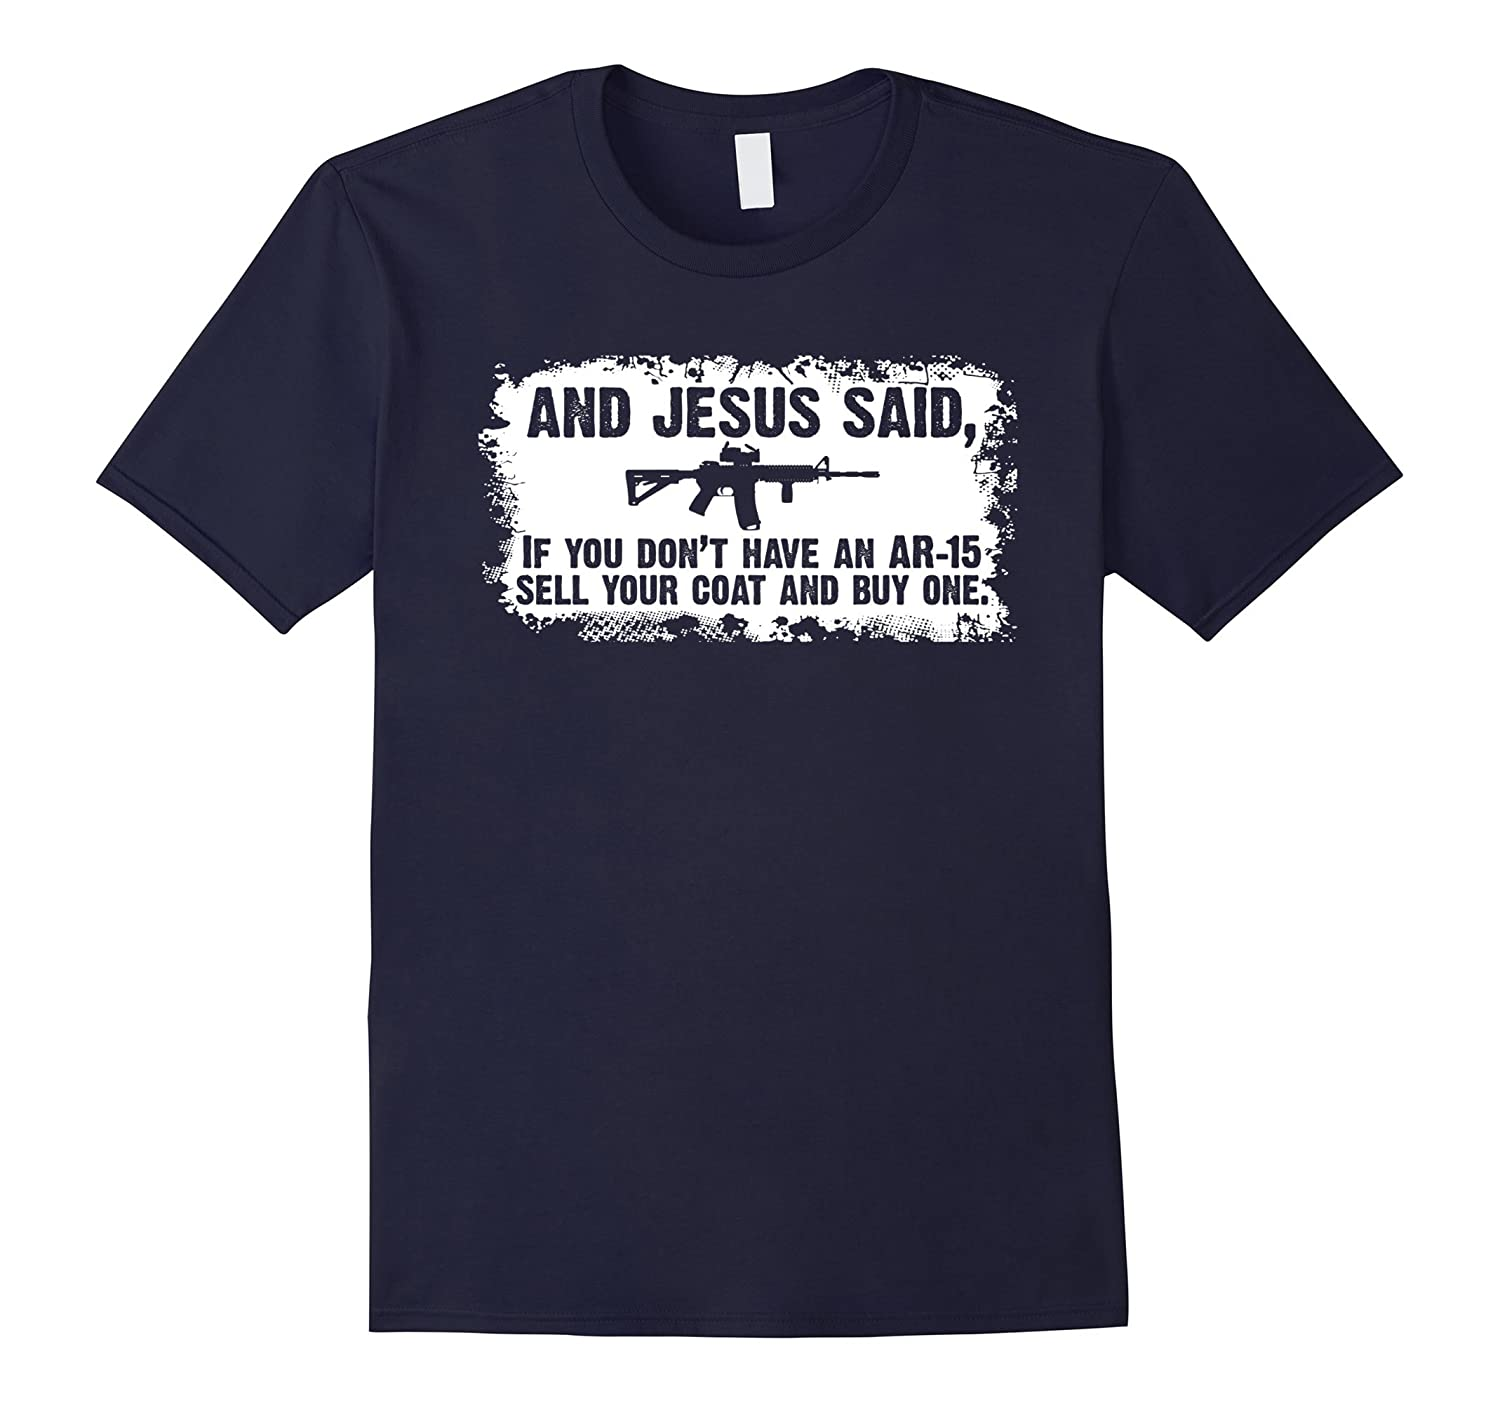 You don't have an AR-15 T Shirt Sell Your Coat And Buy One-TH